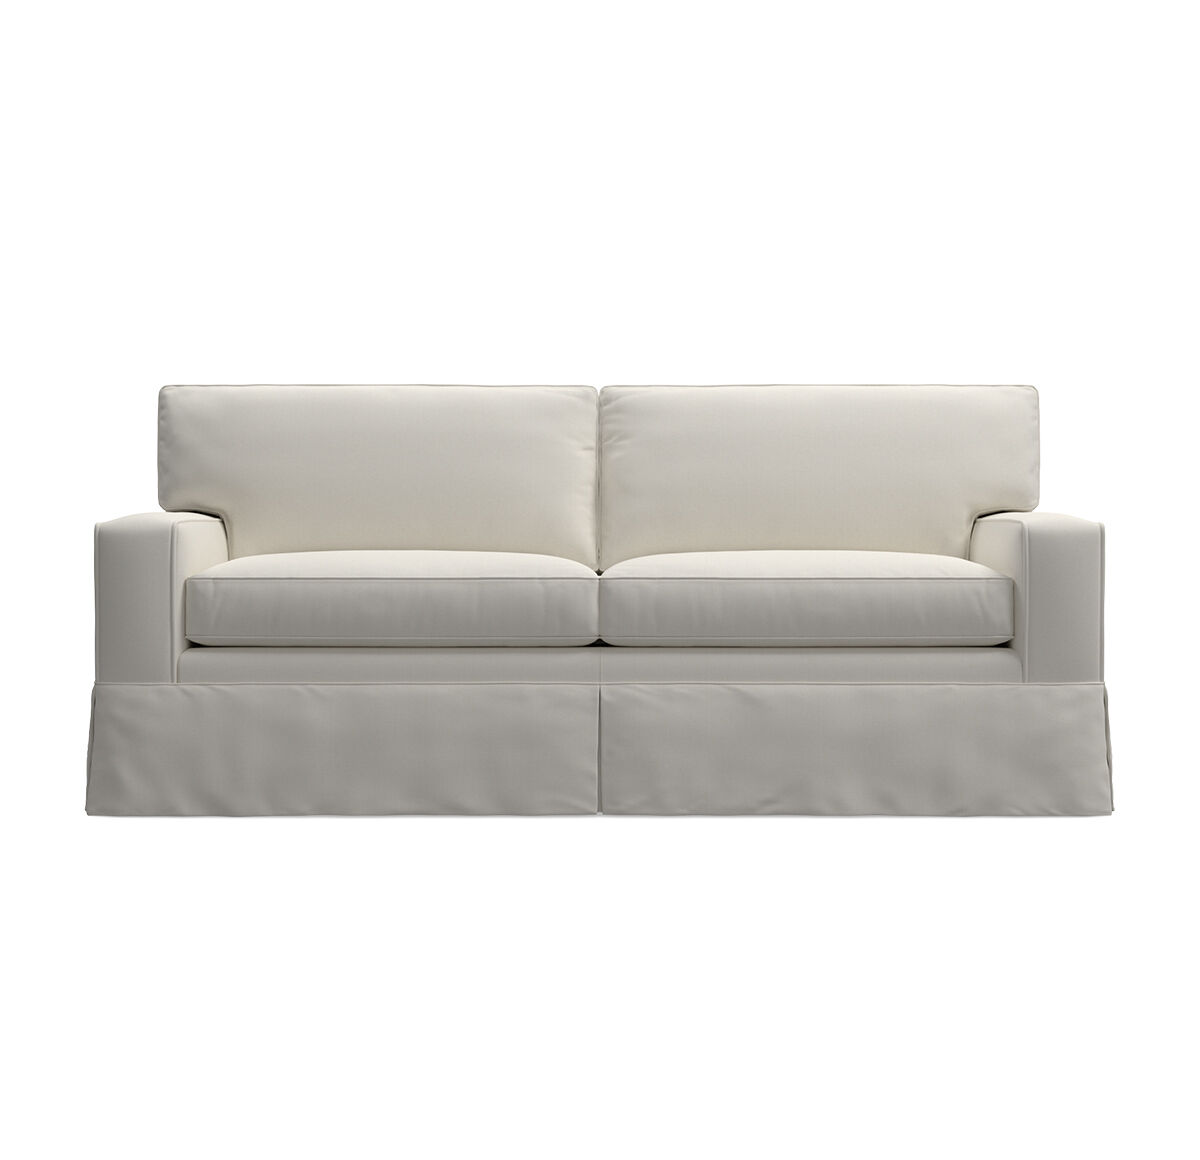 ALEX II LUXE QUEEN SLIPCOVER SLEEPER SOFA LOOSE SKIRT